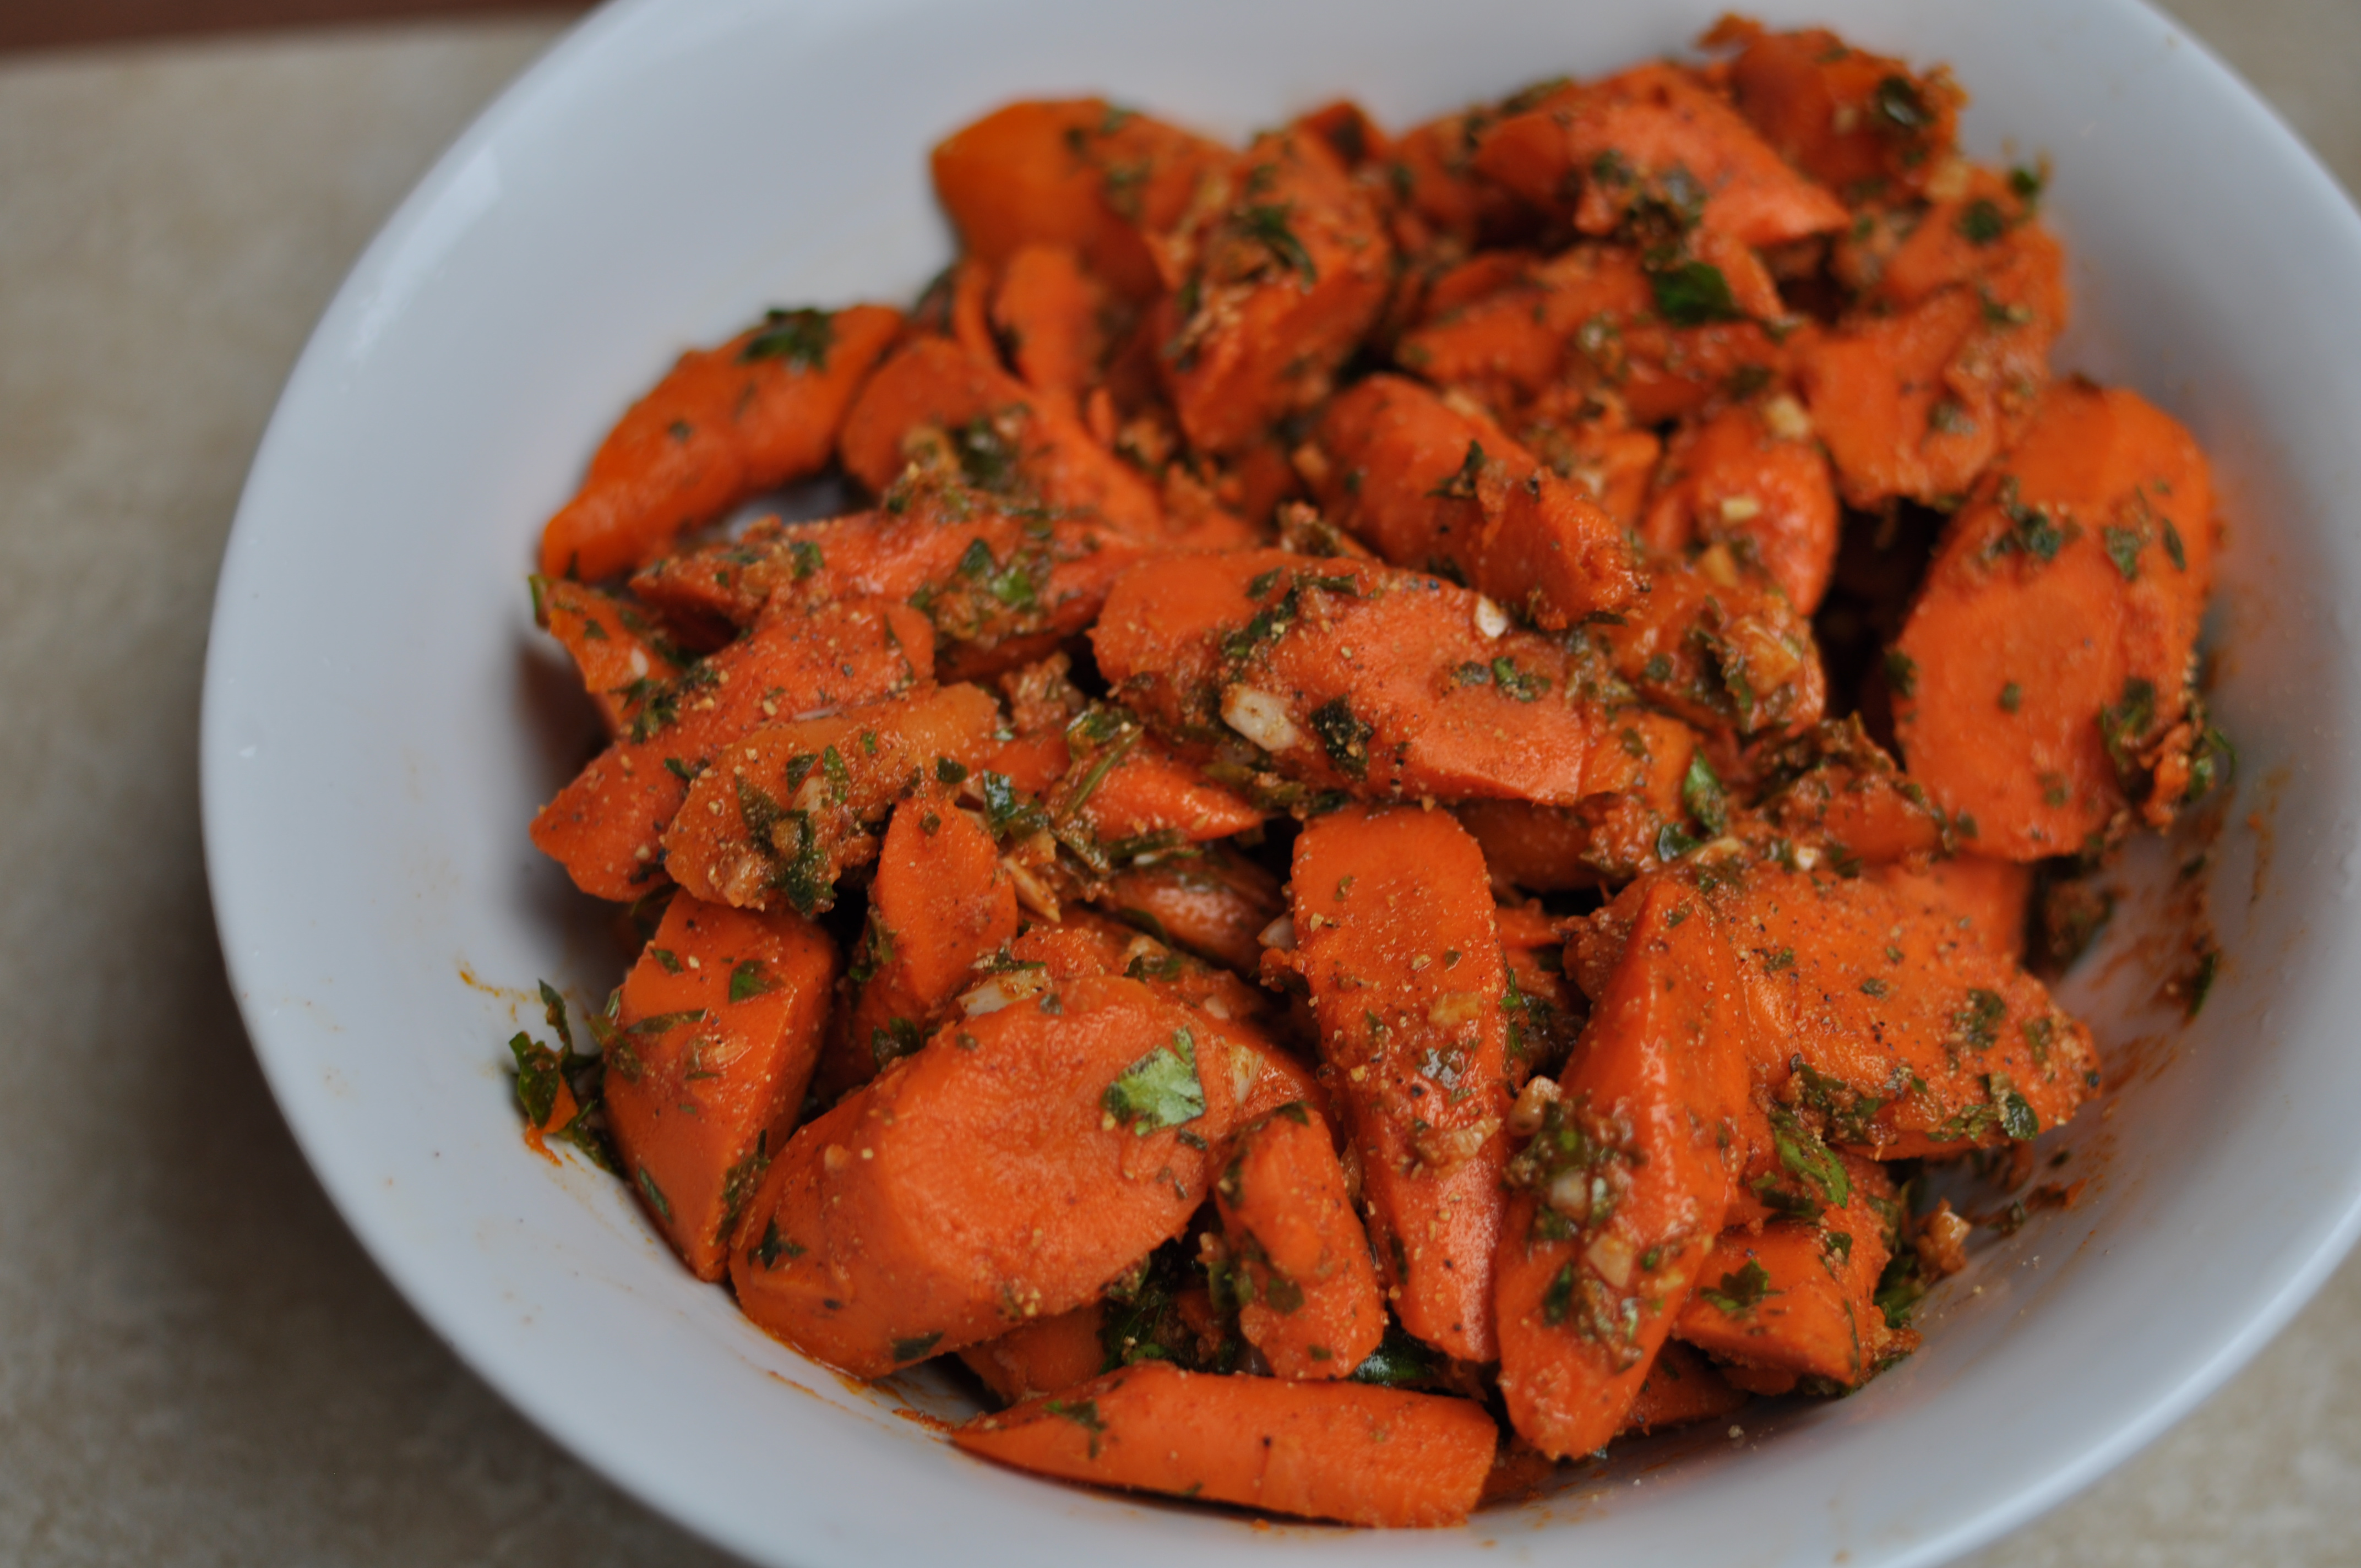 Casablanca Carrots from Melissa Joulwan {Well Fed 2 Review}